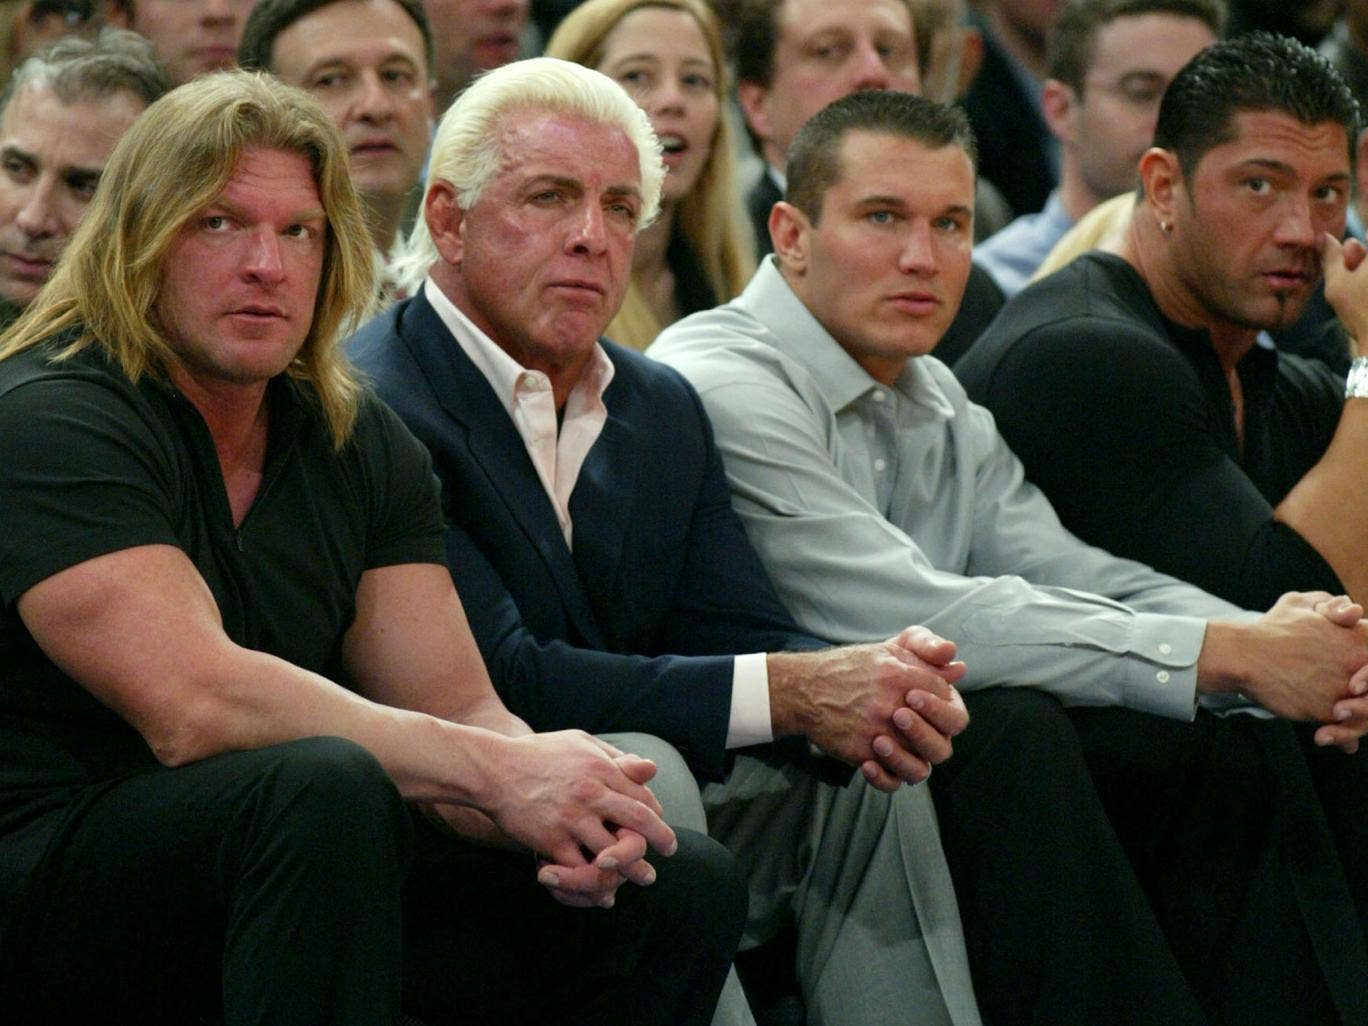 Evolution - Triple H, Ric Flair, Randy Orton and Batista pictured in 2004